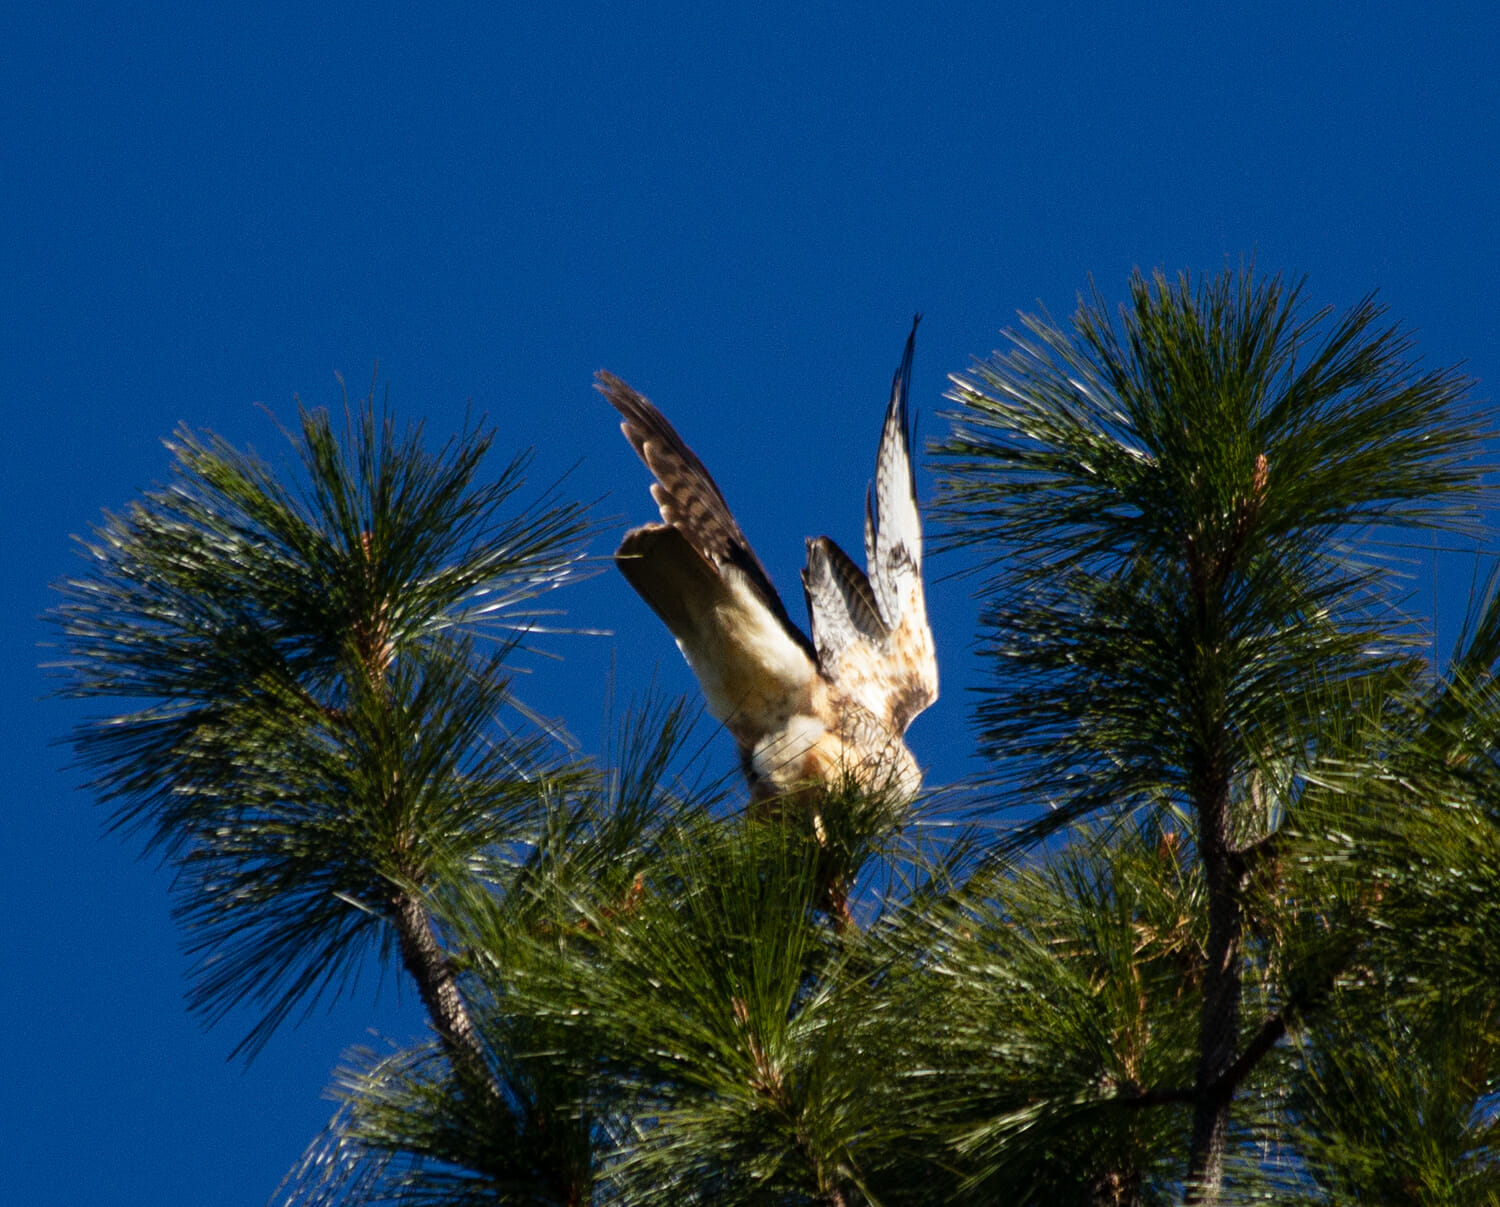 Red-tailed hawk taking flight. Photo: YubaNet